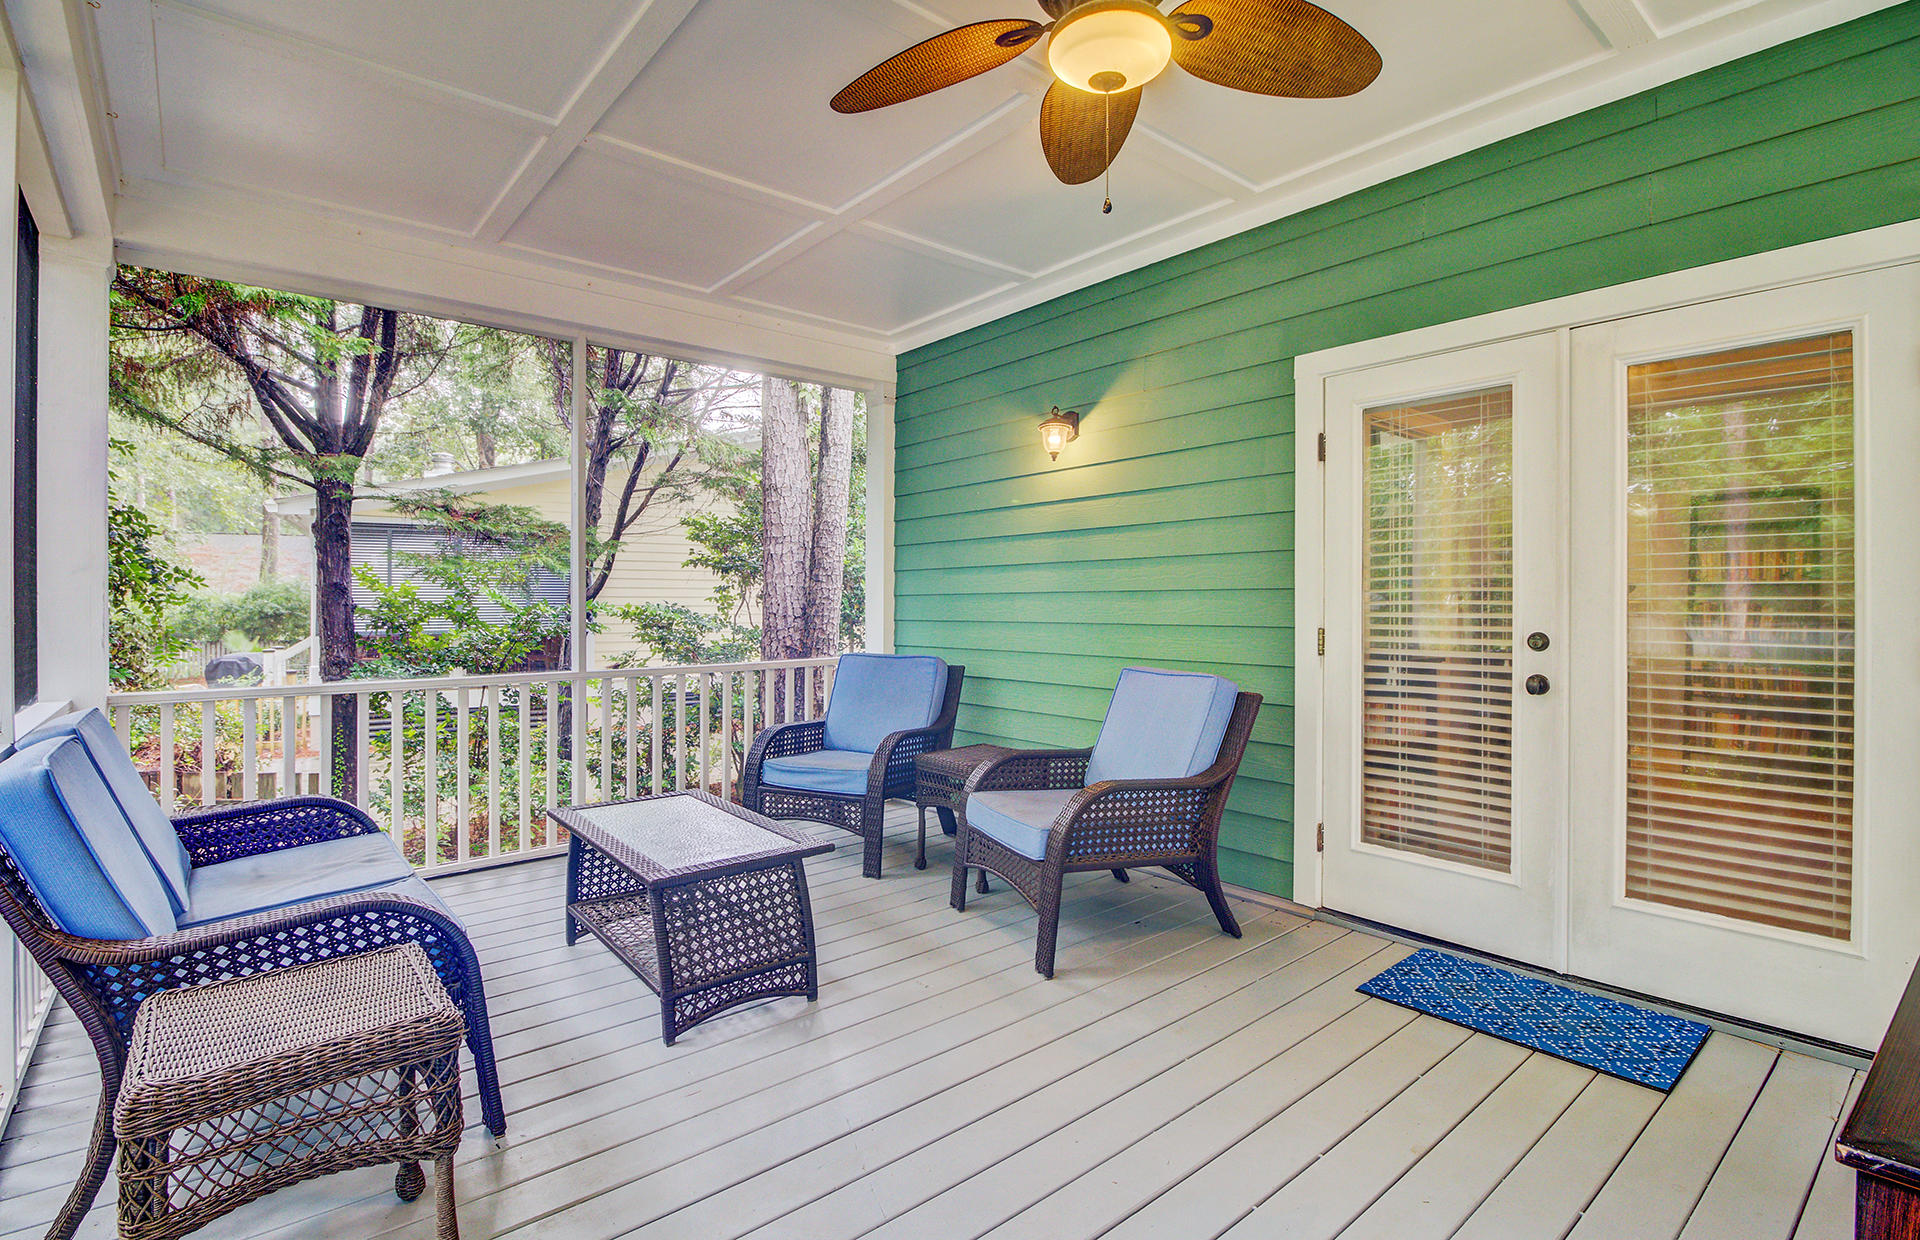 The Villages In St Johns Woods Homes For Sale - 5032 Coral Reef, Johns Island, SC - 2